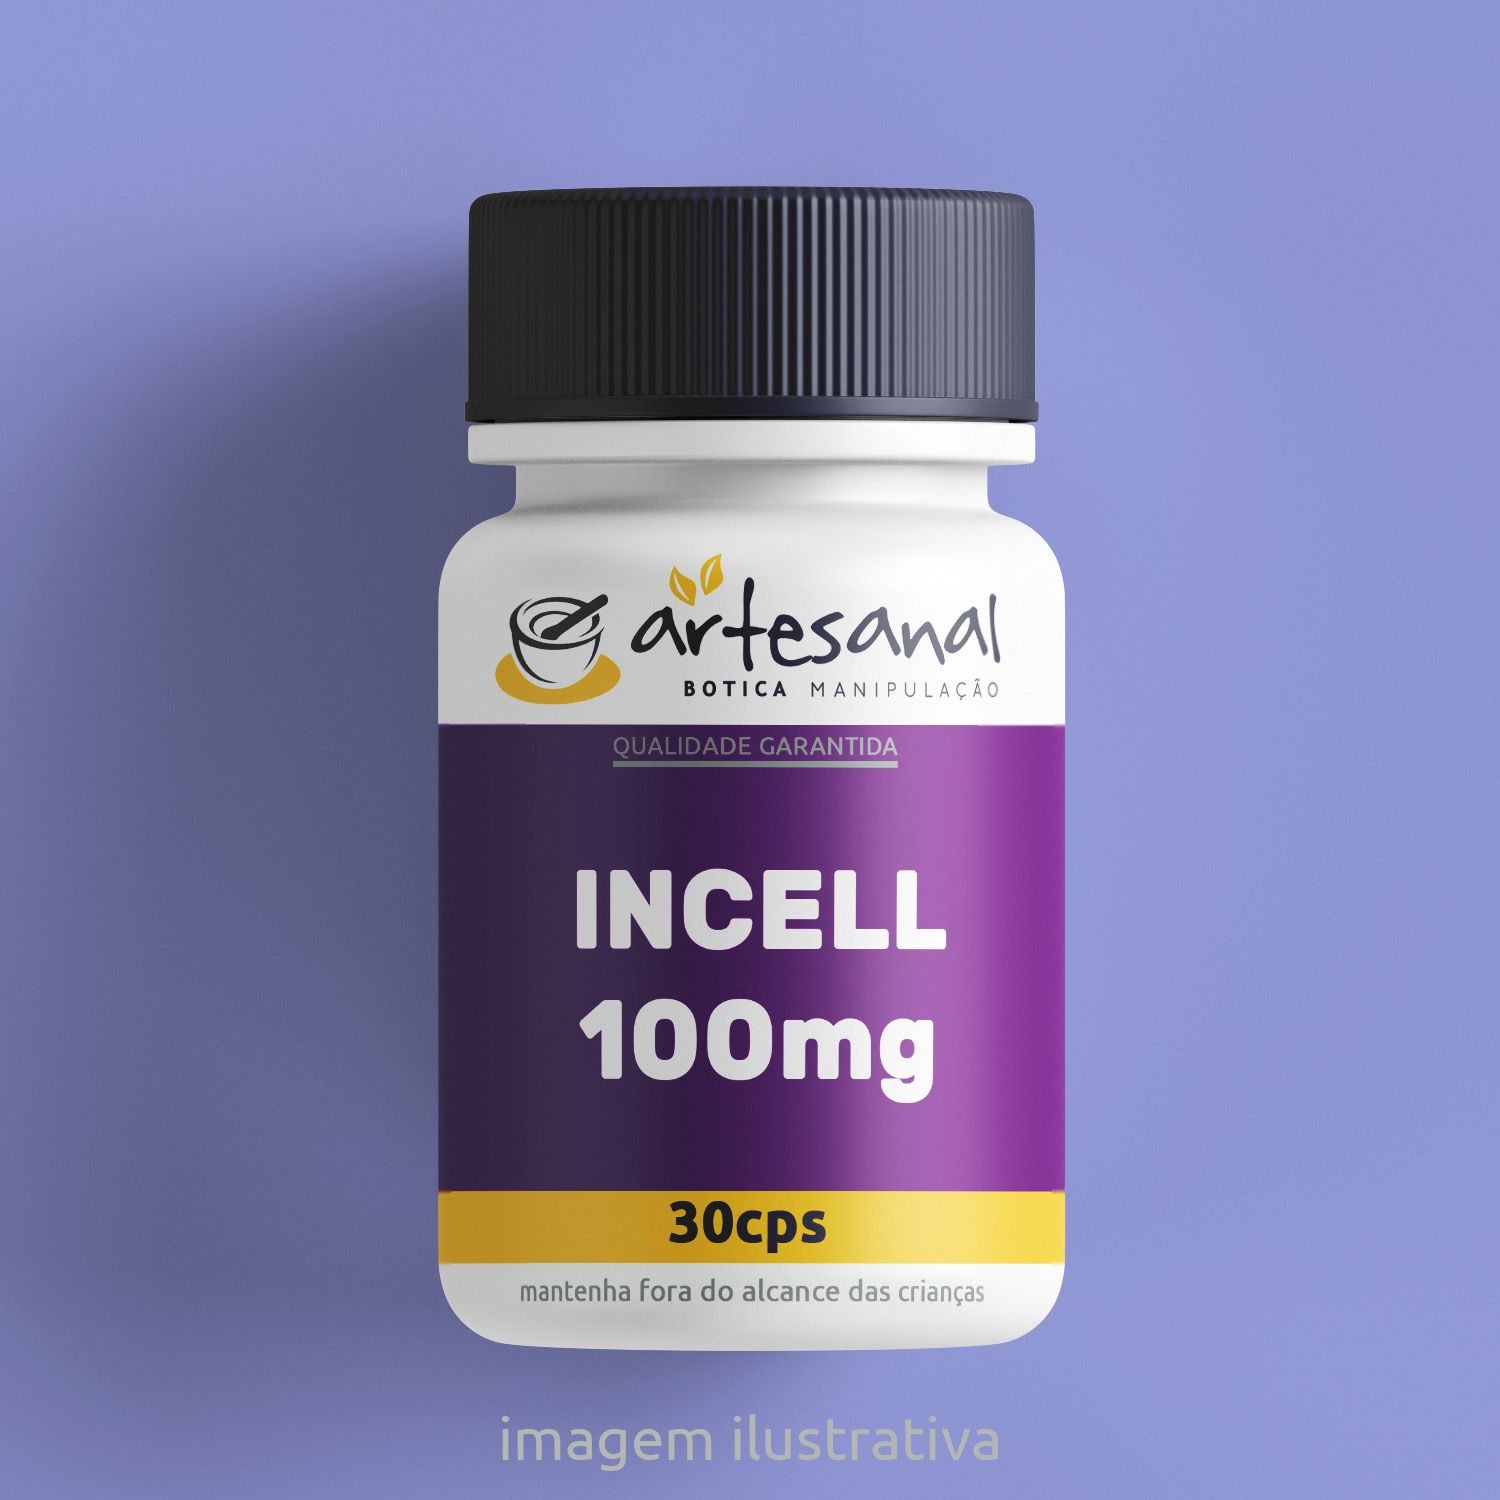 Incell 100mg - 30 Cps